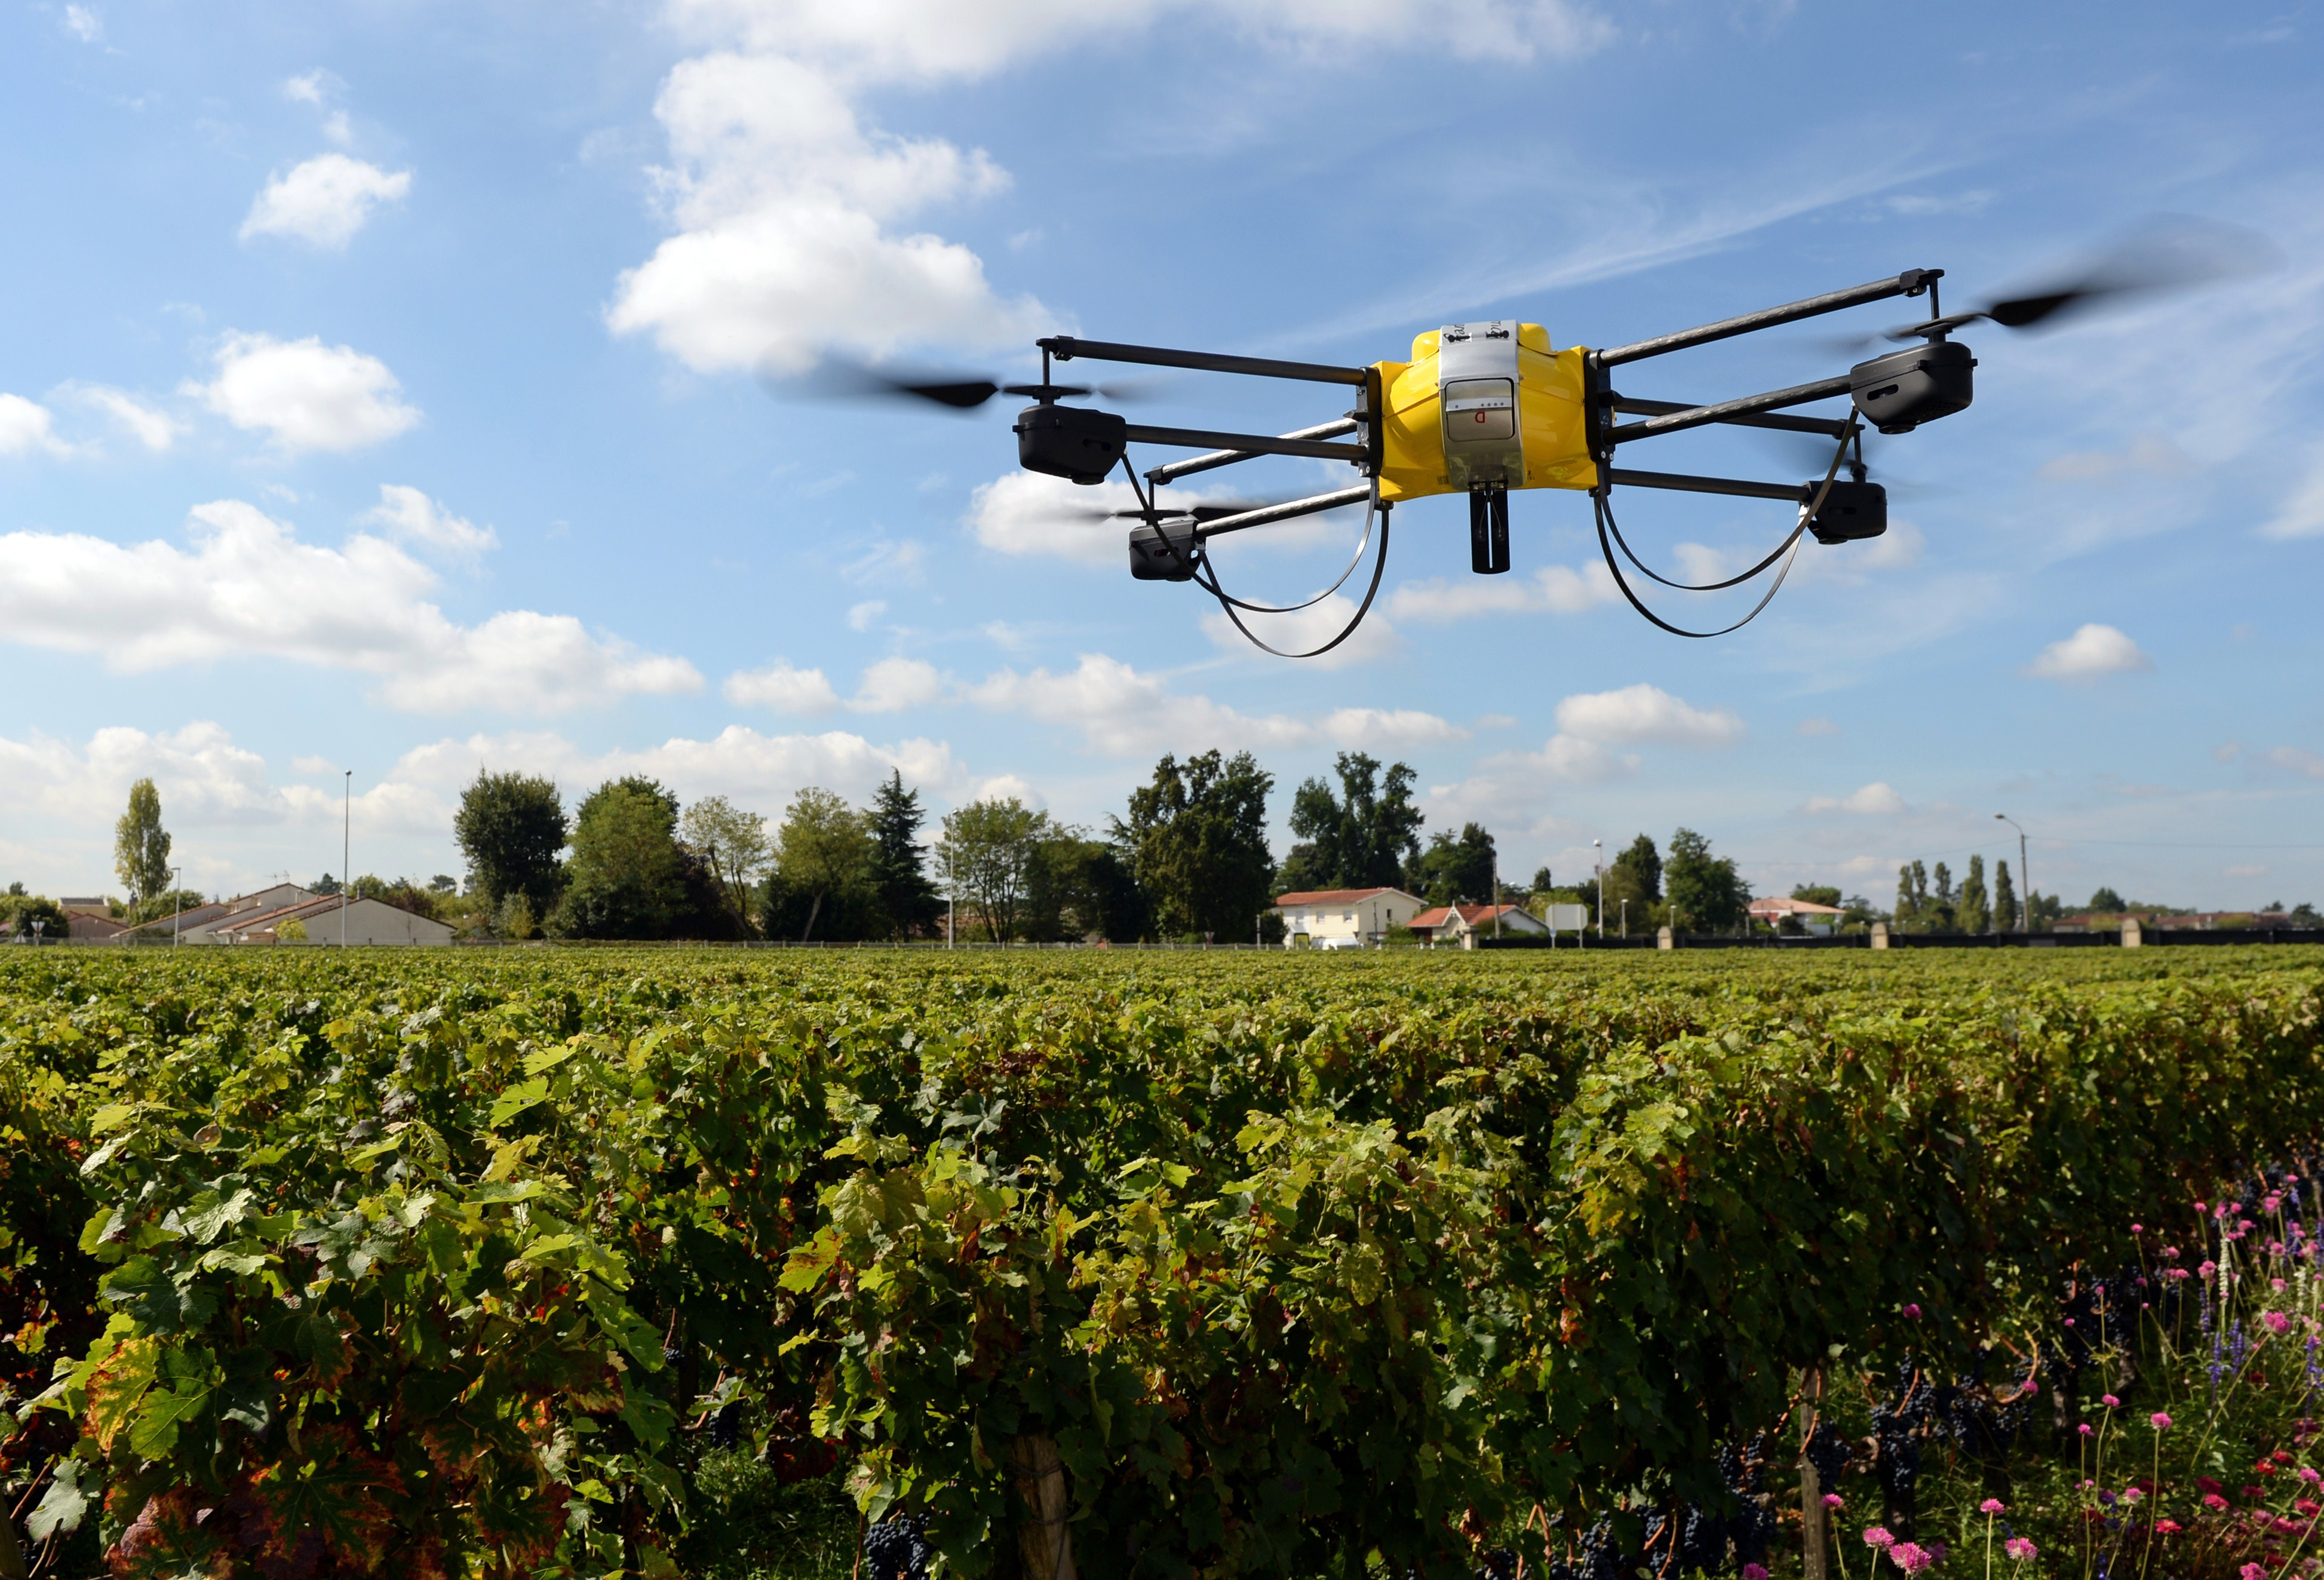 Drones: Revolutionizing the future of Agriculture